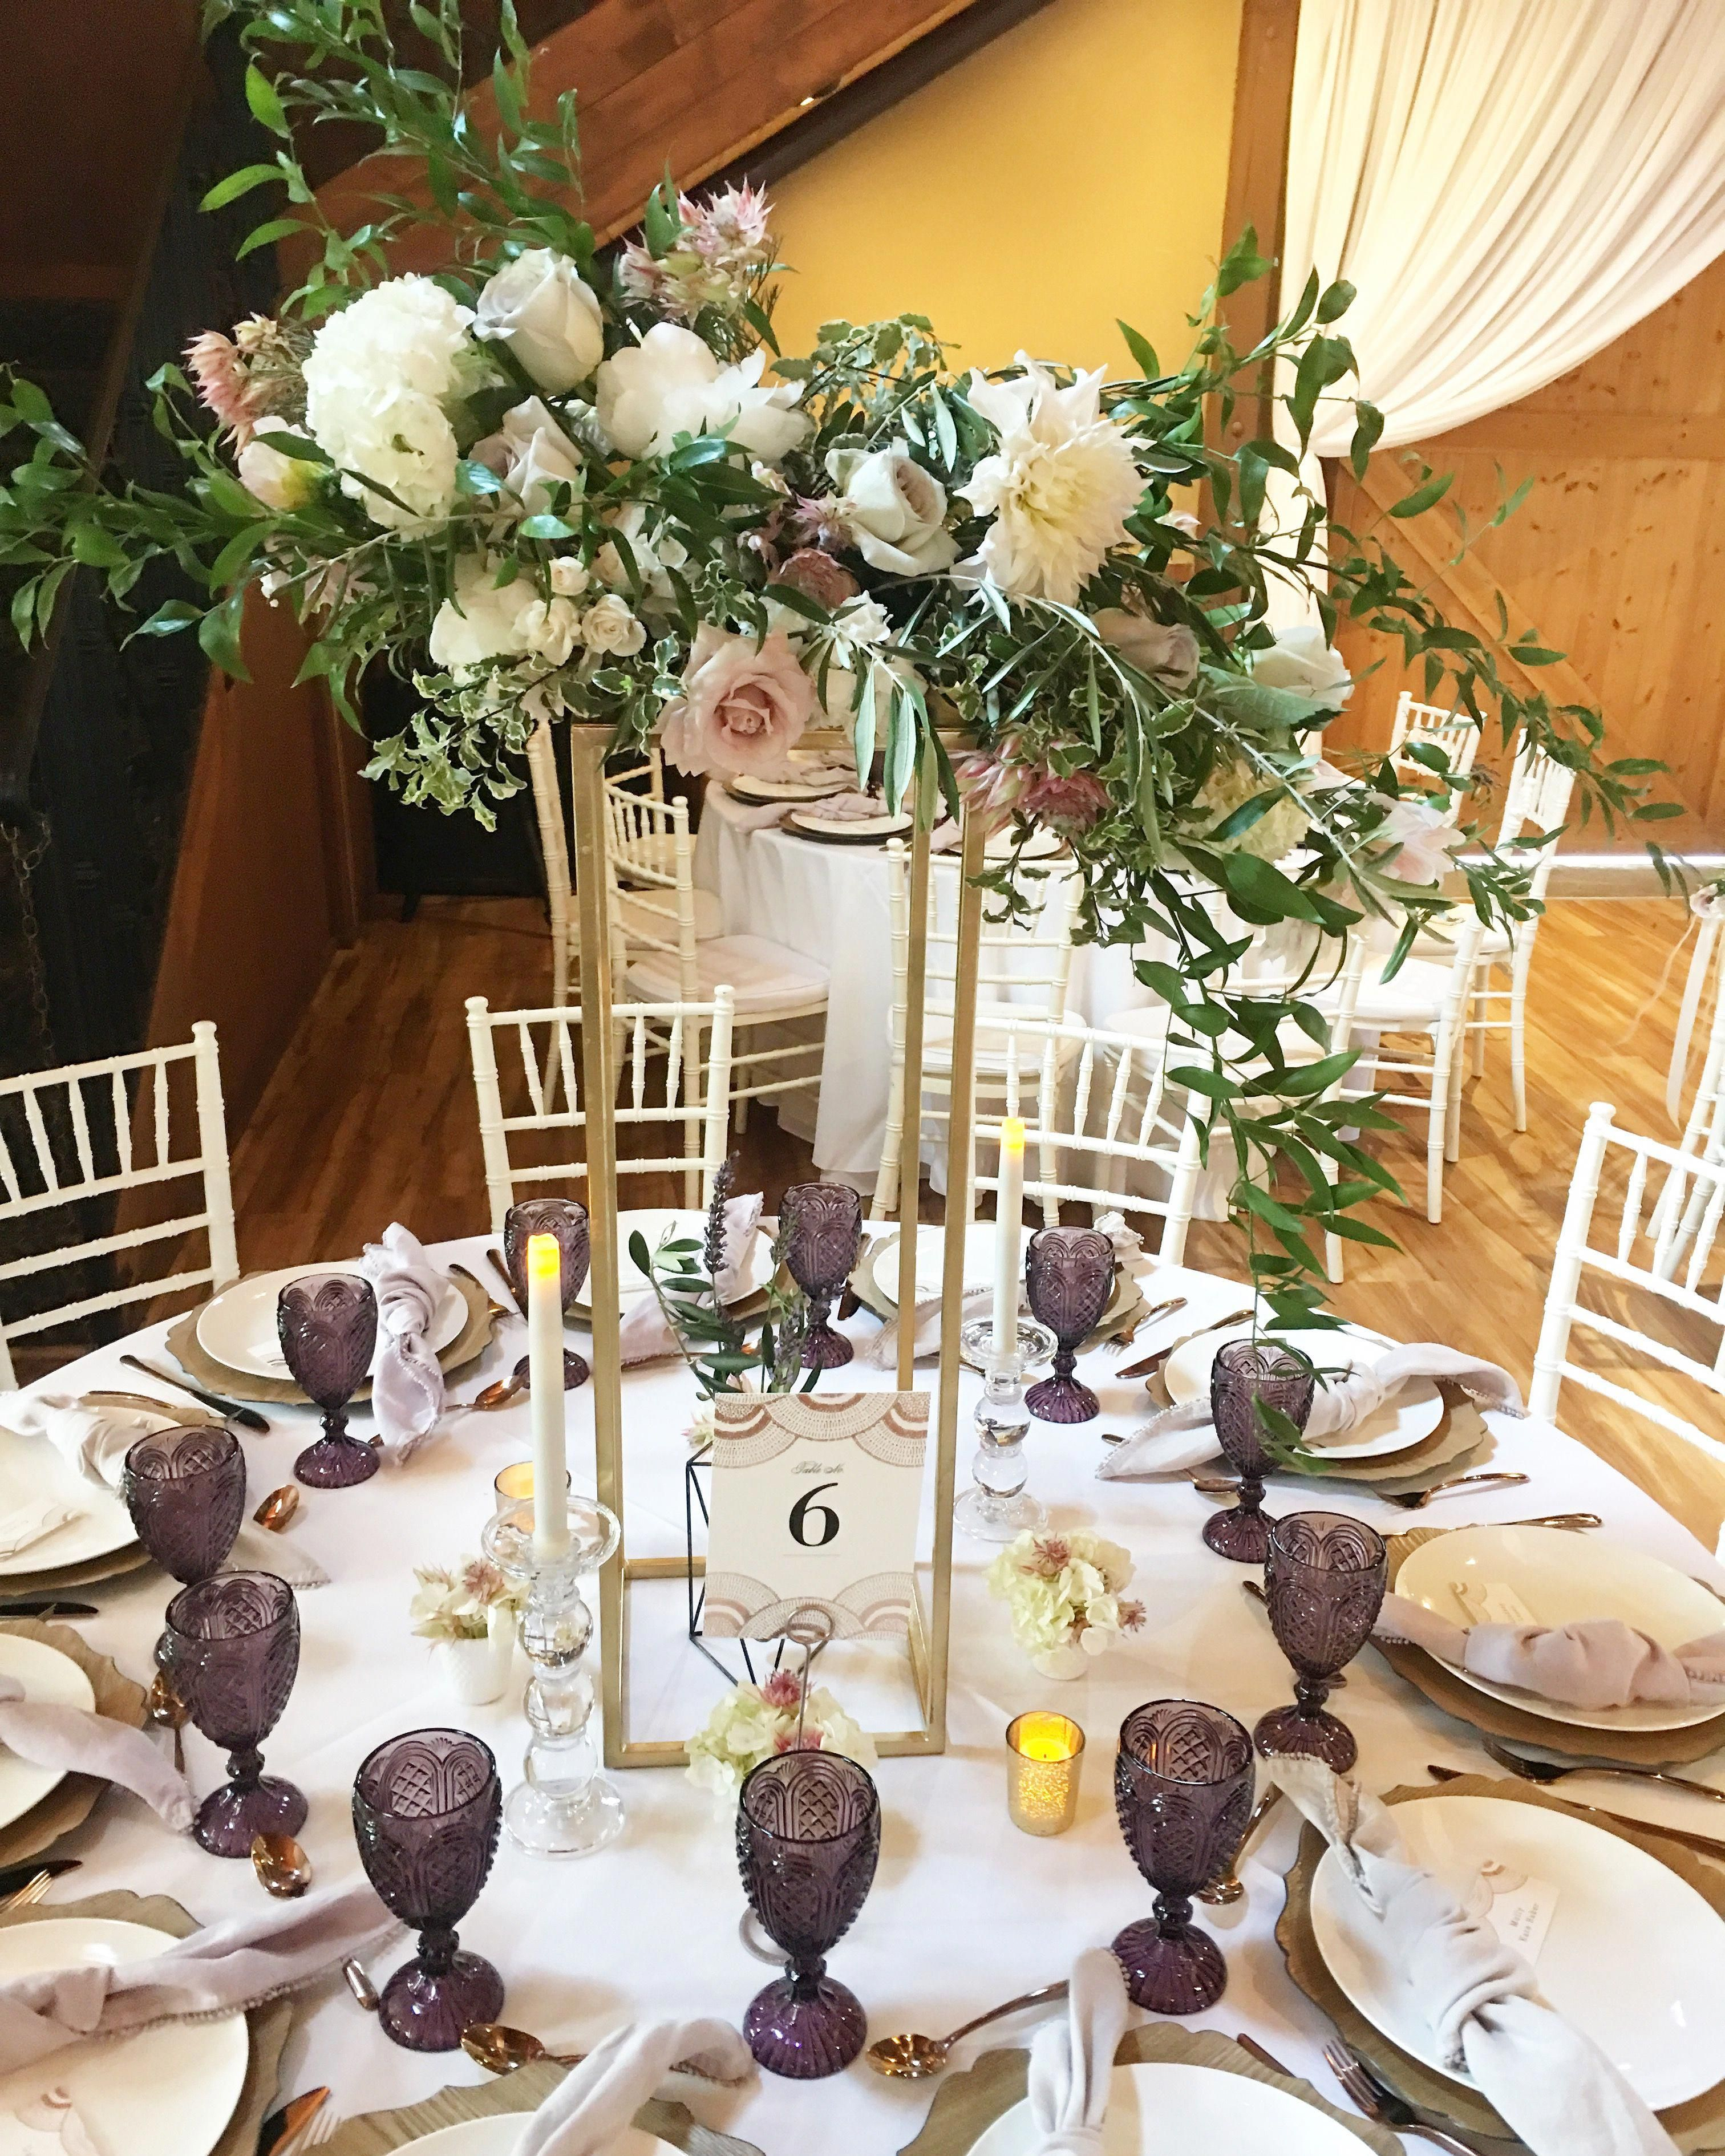 Enticing tables offers imperial for wedding and party